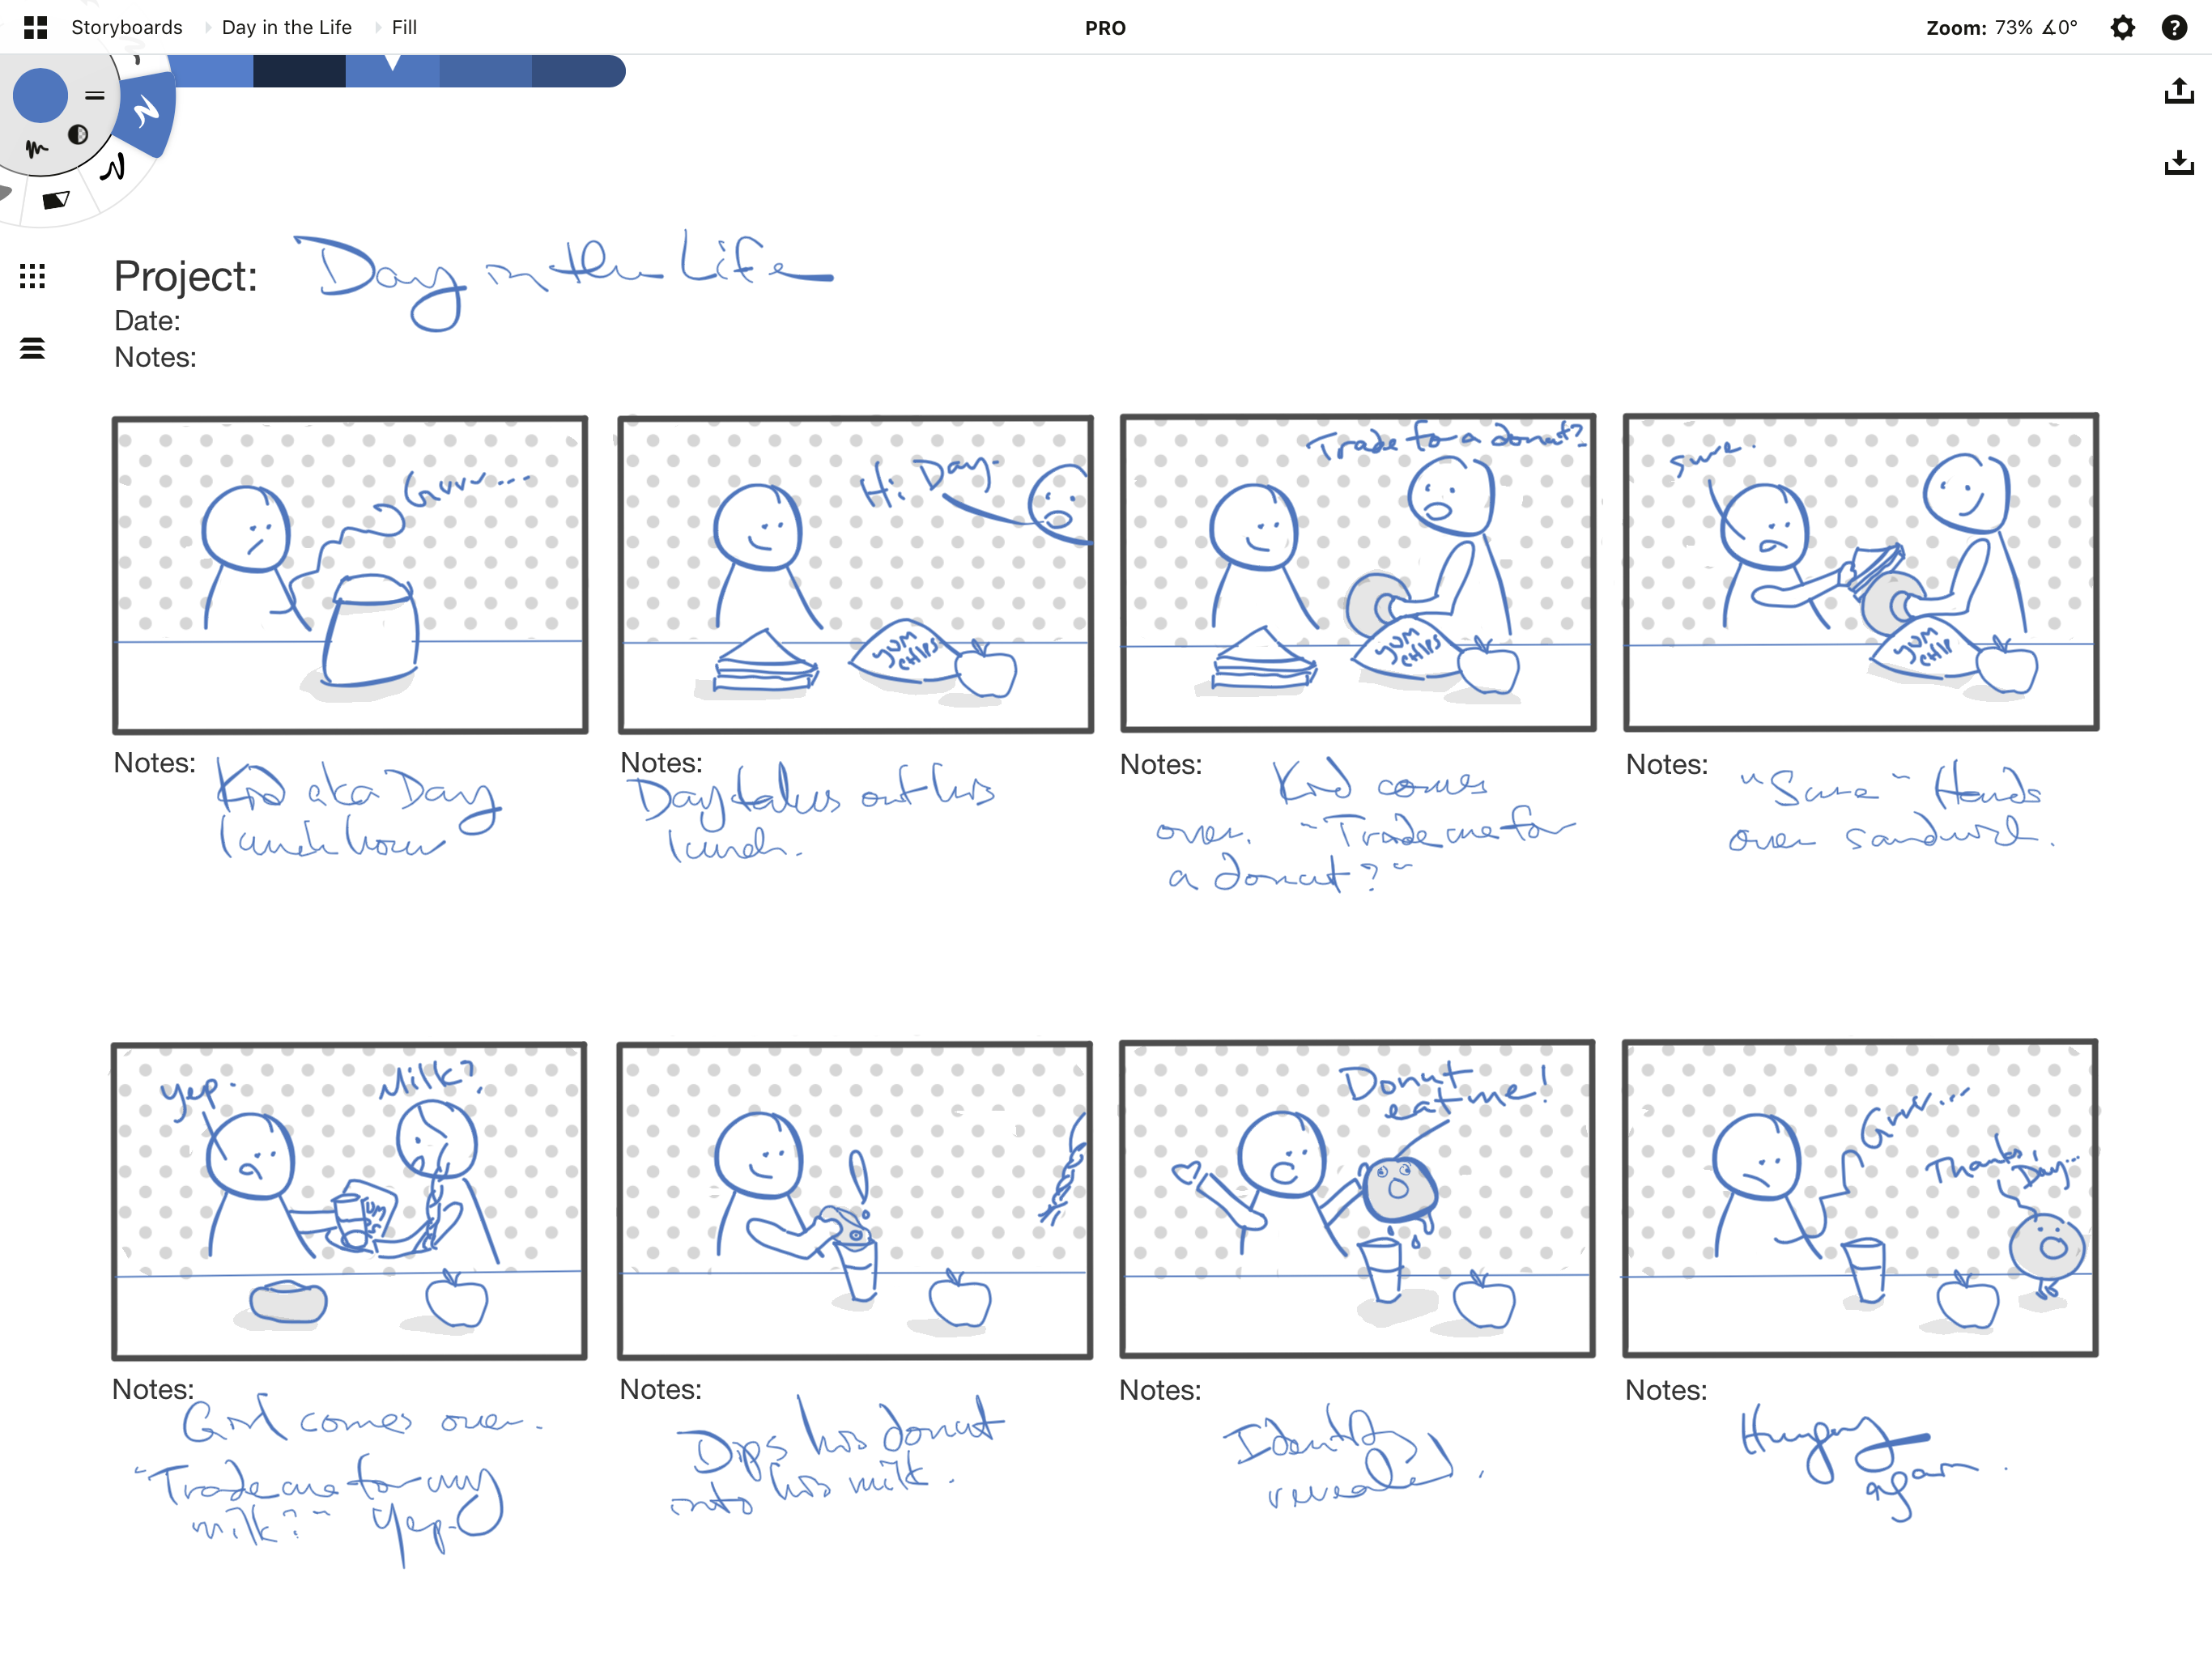 templates_storyboardexample.PNG